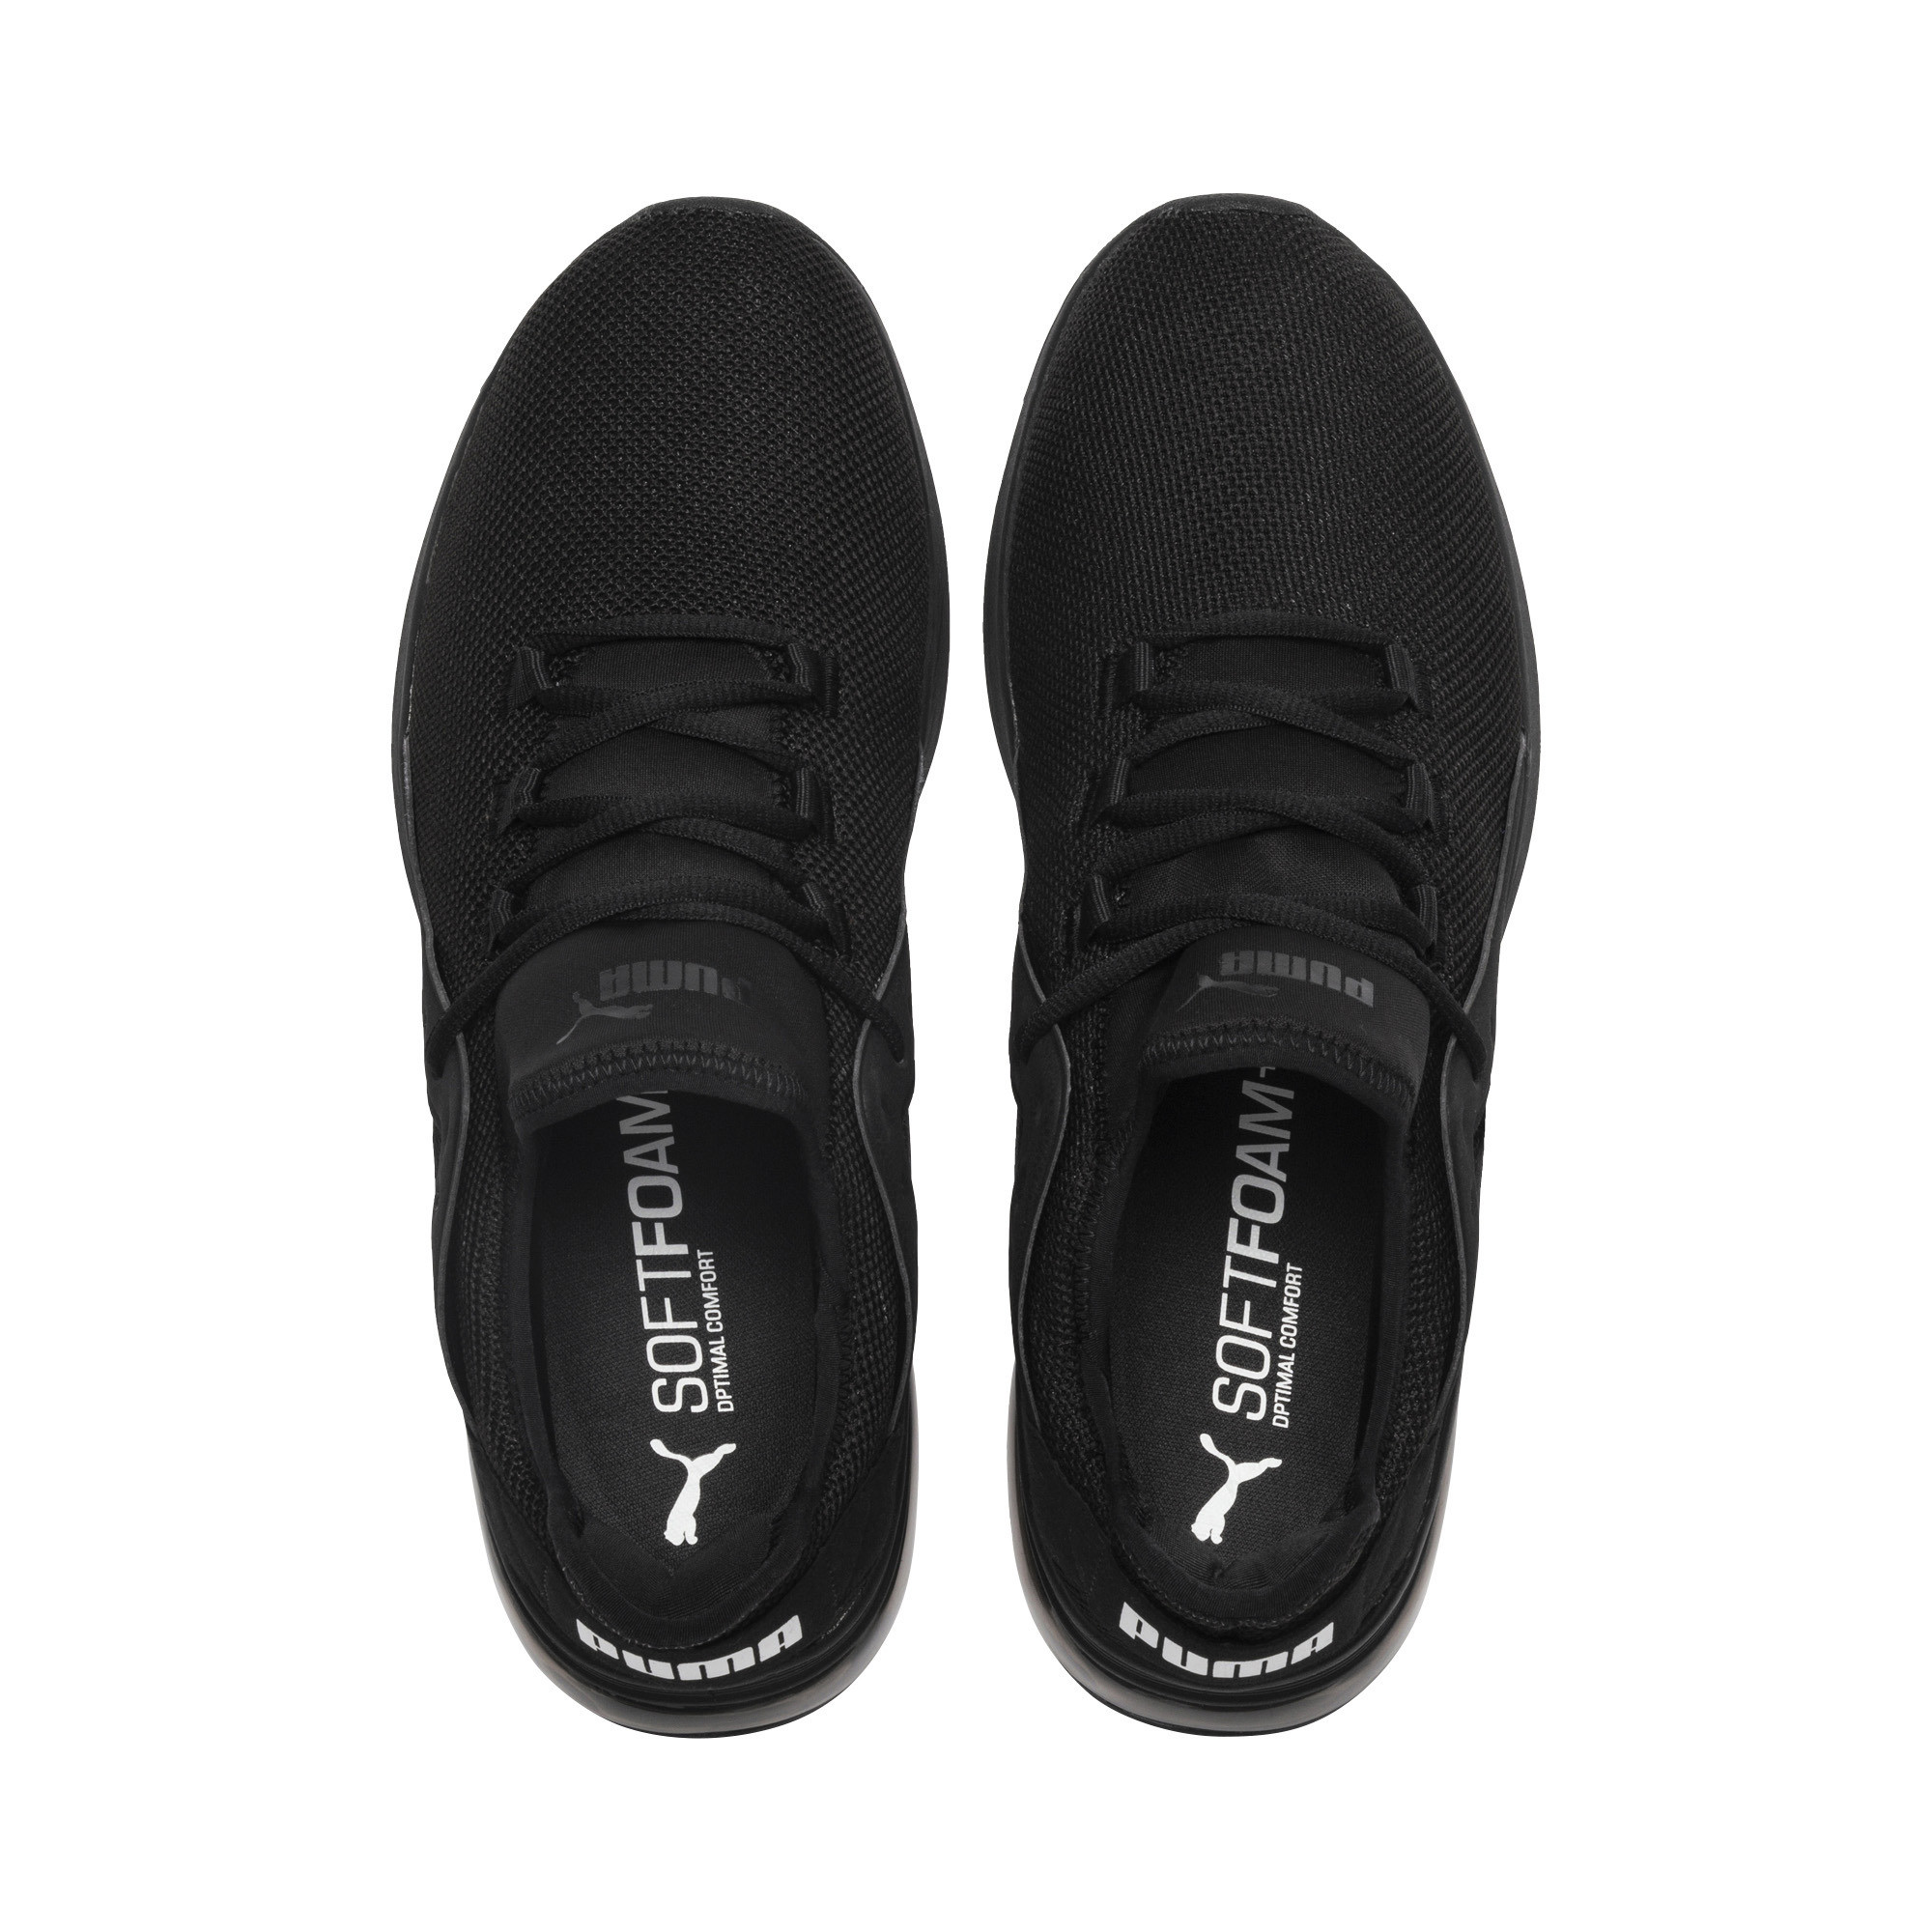 PUMA-Electron-Street-Sneakers-Men-Shoe-Basics thumbnail 13